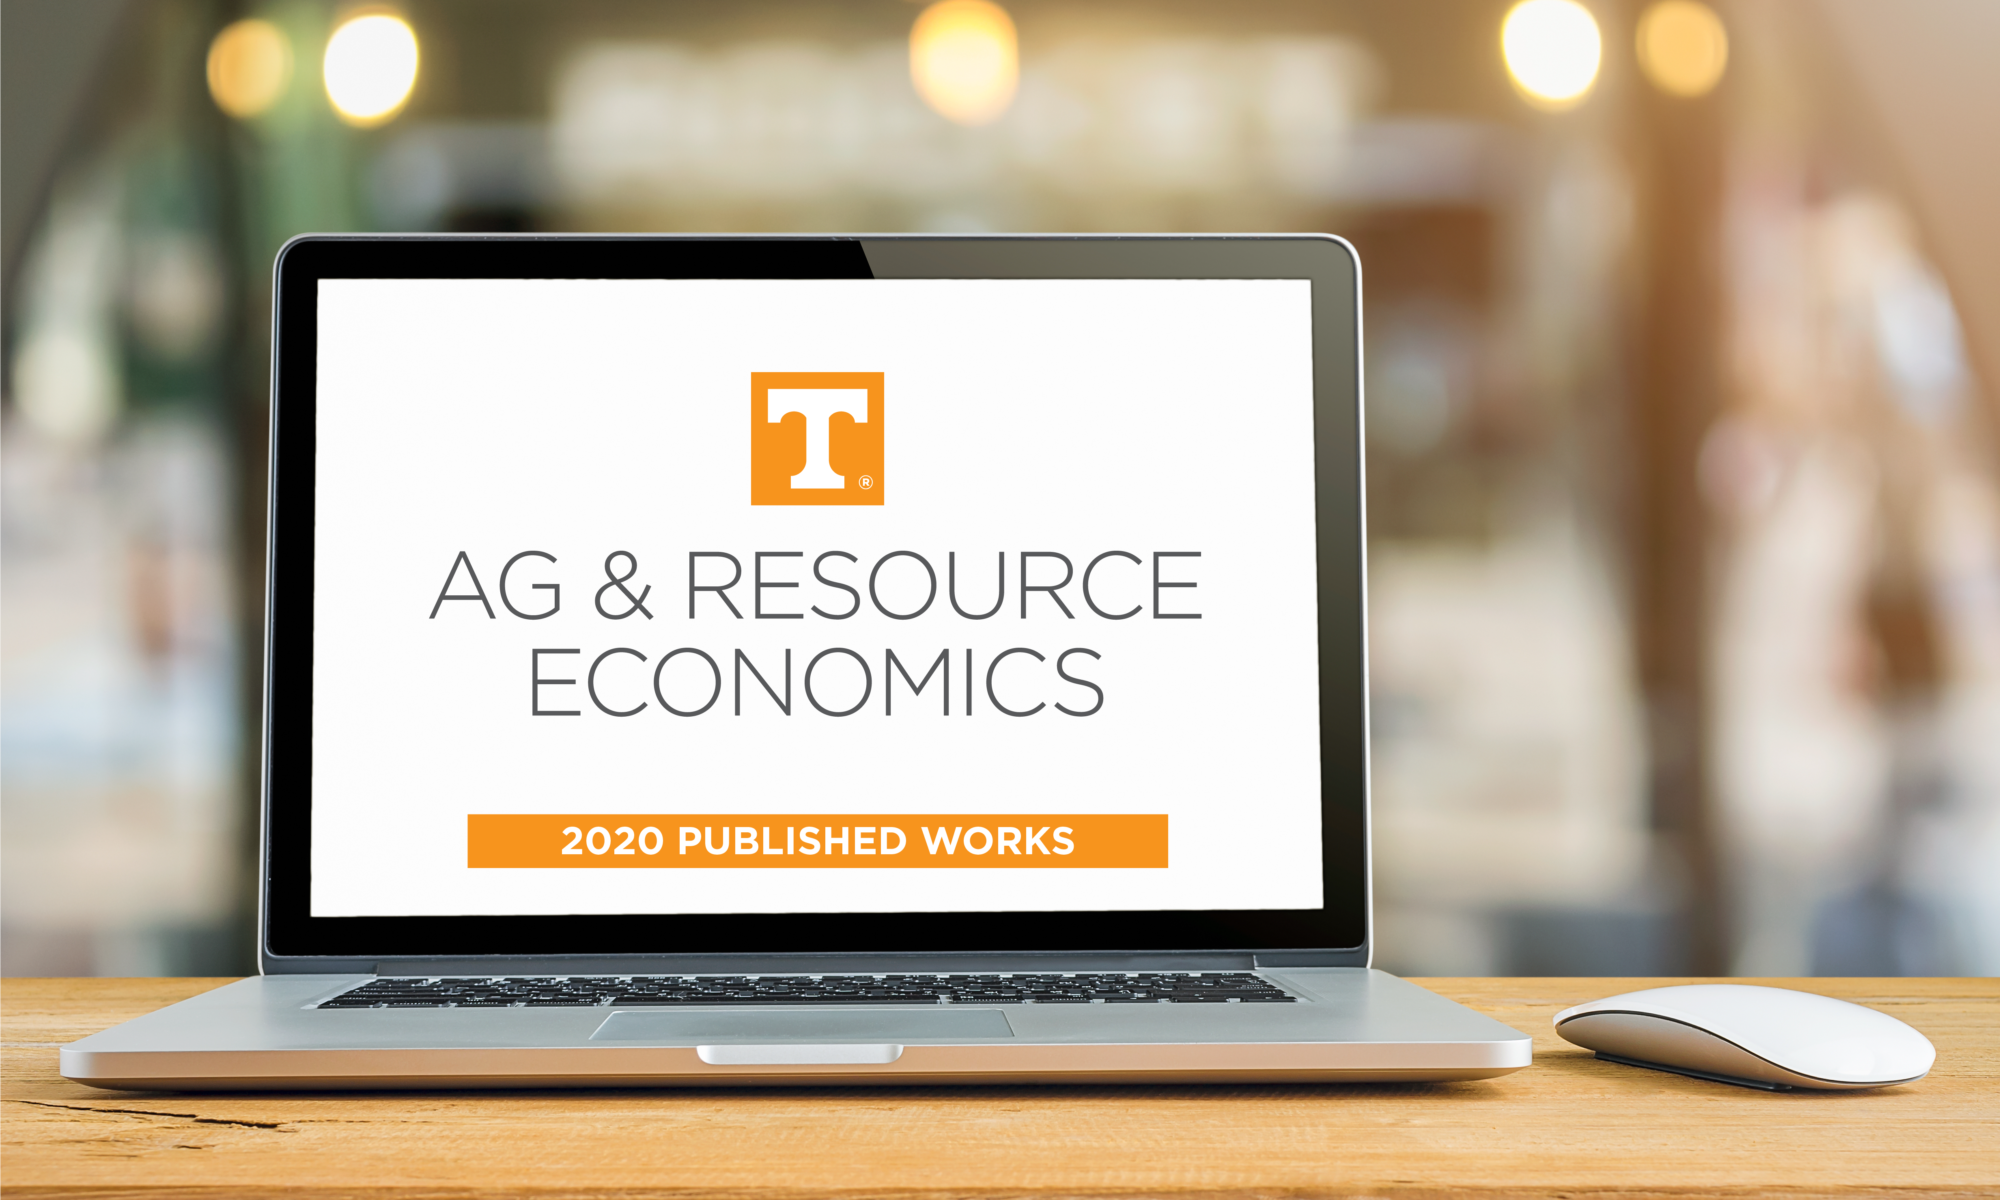 Ag & Resource Economics Published Works for 2020